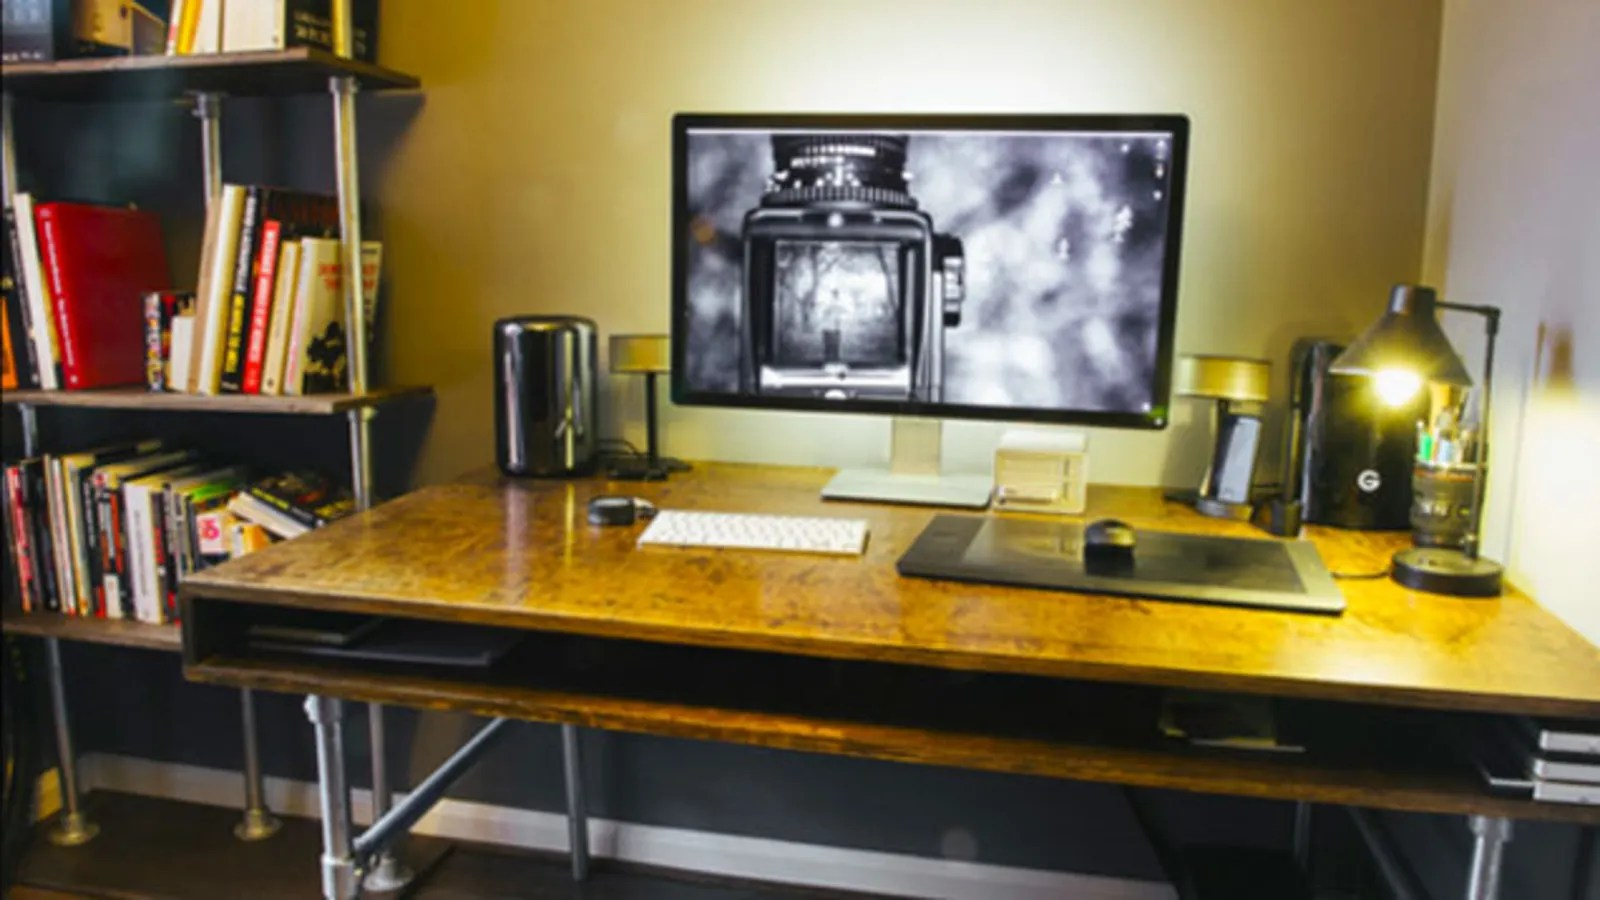 The DIY ClutterFree Photo Editing Workspace